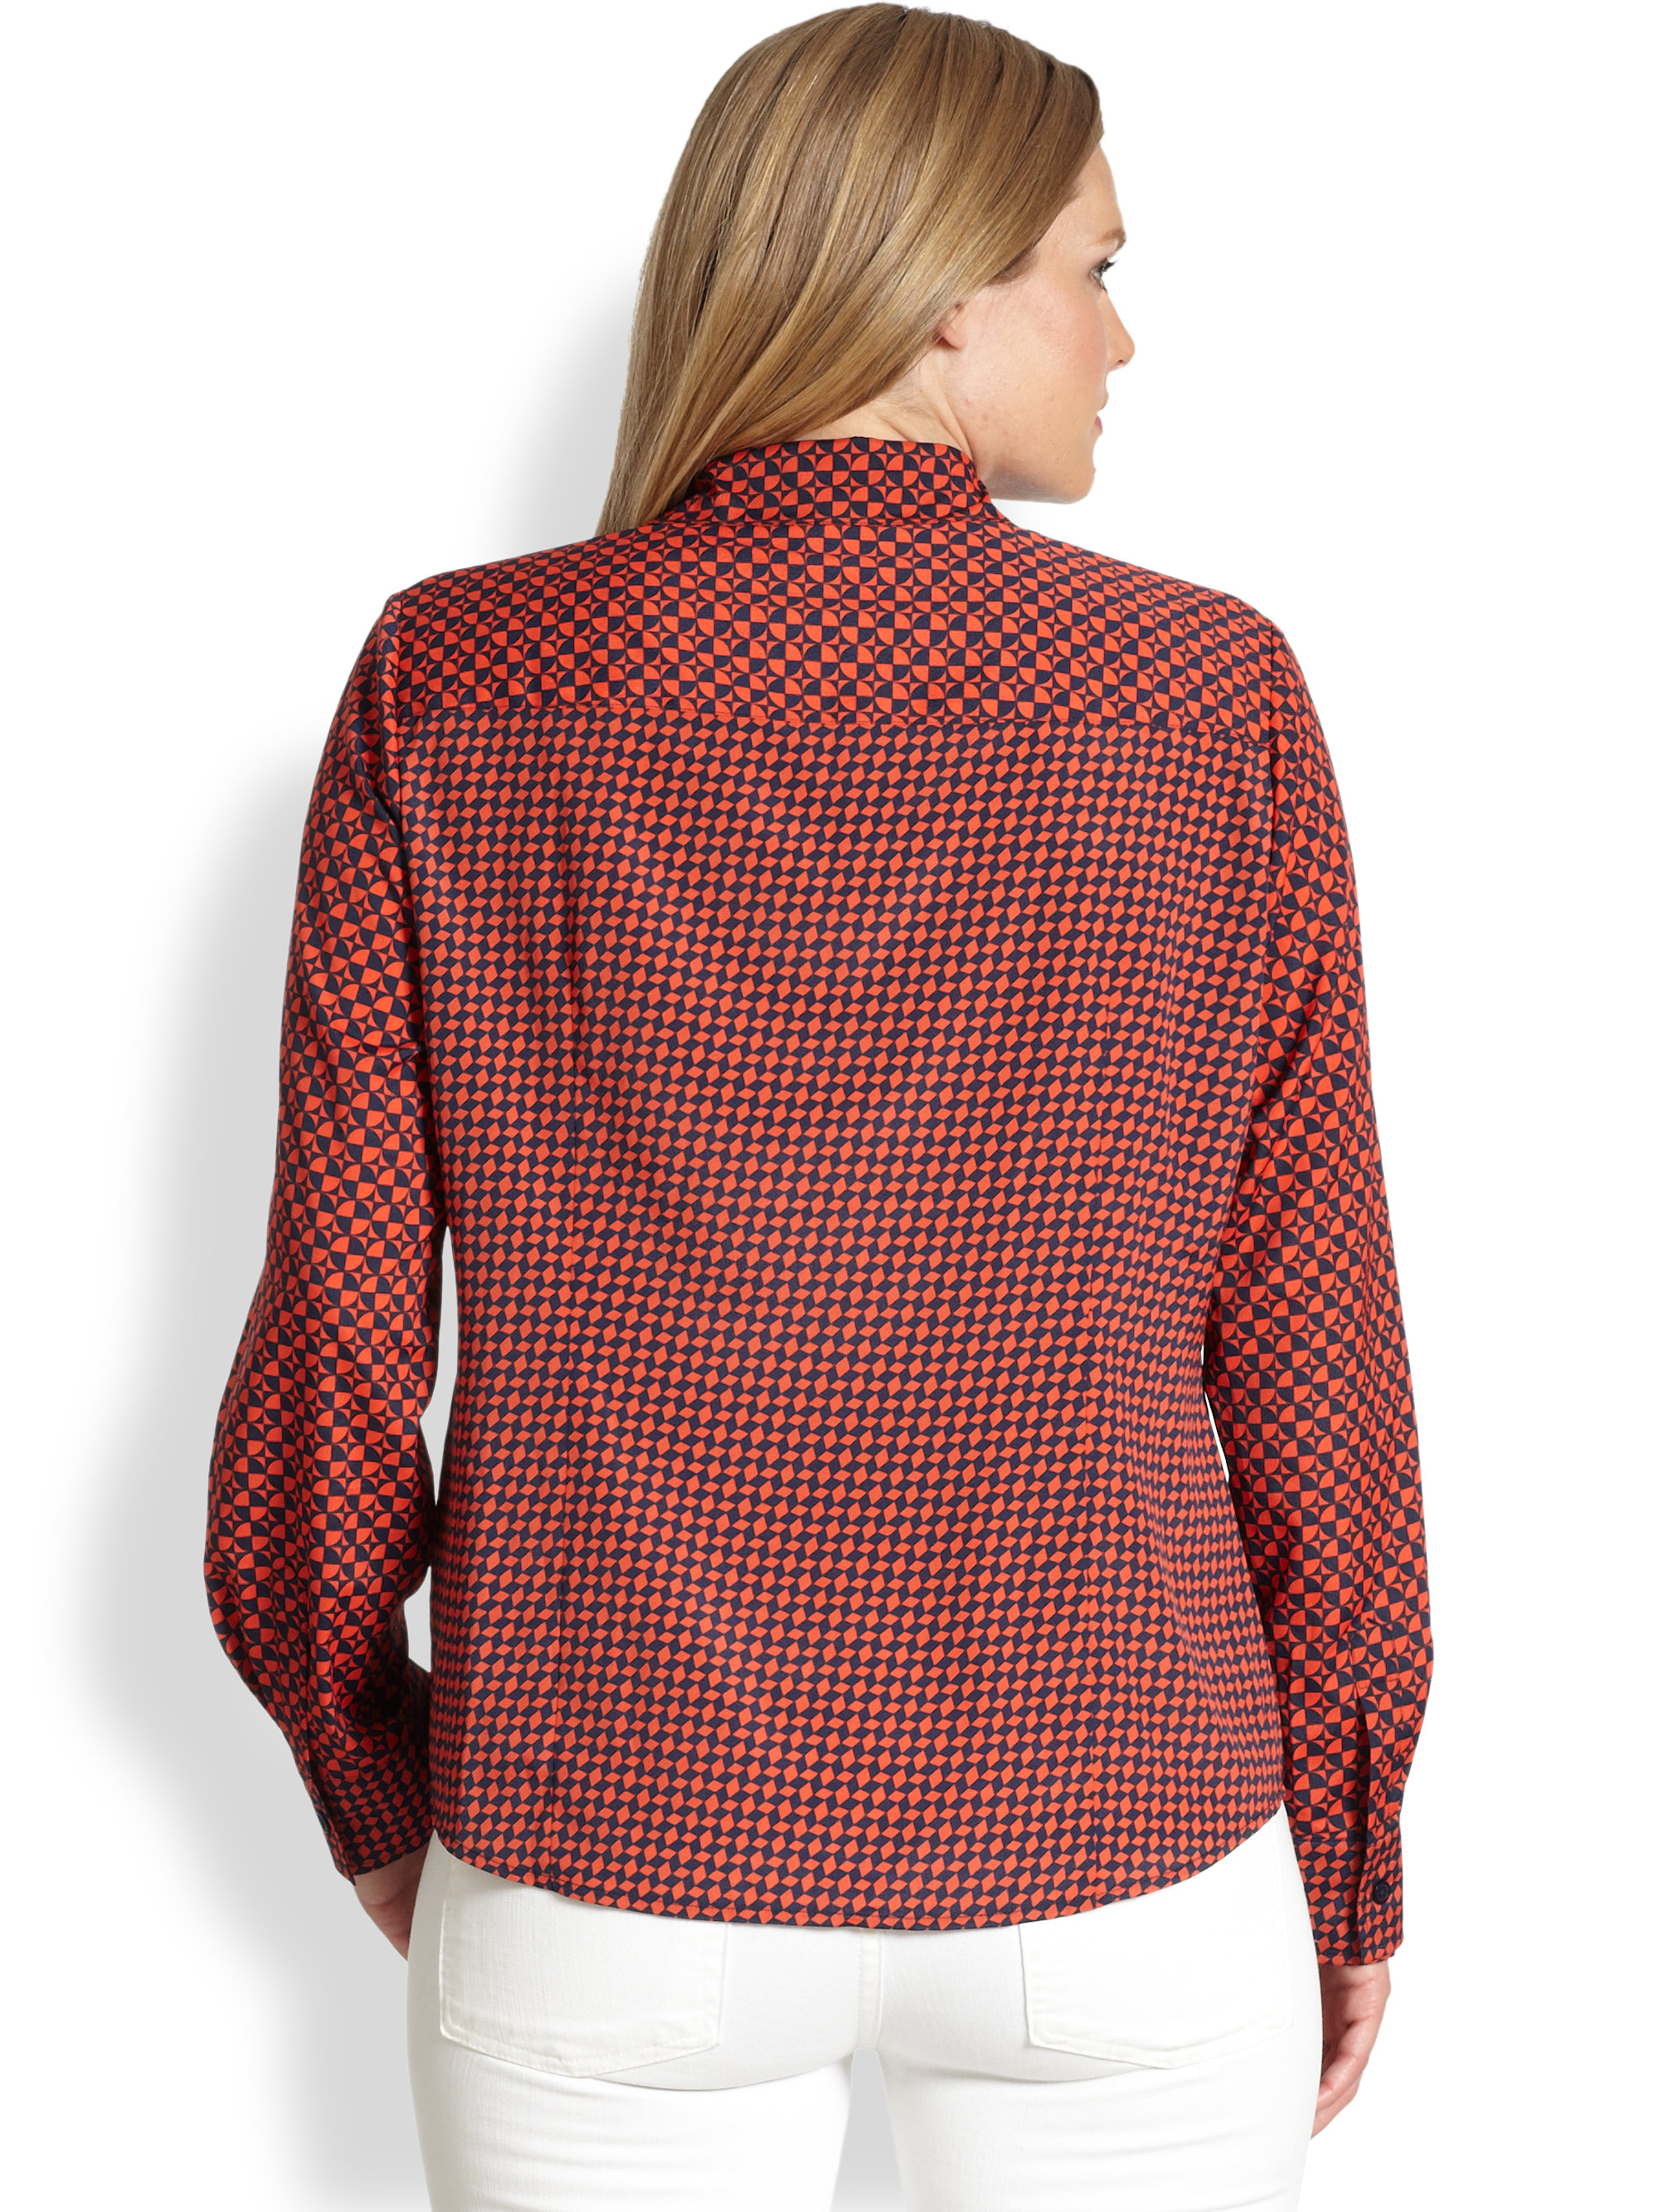 michael michael kors abstract diamondpebble print blouse in pink coral rose lyst. Black Bedroom Furniture Sets. Home Design Ideas